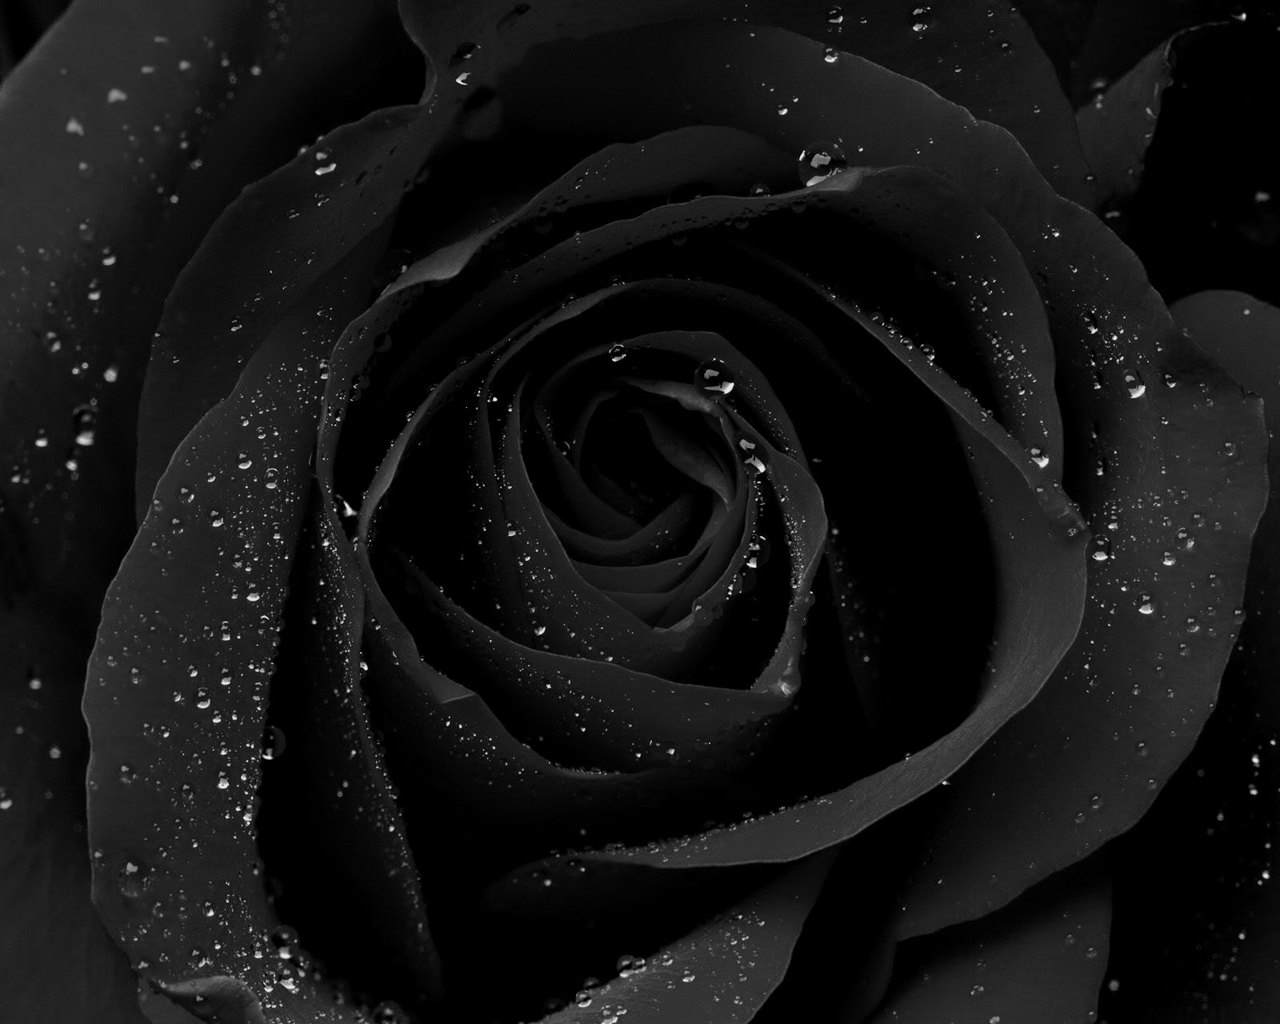 Black Rose Picture - Black Rose Picture